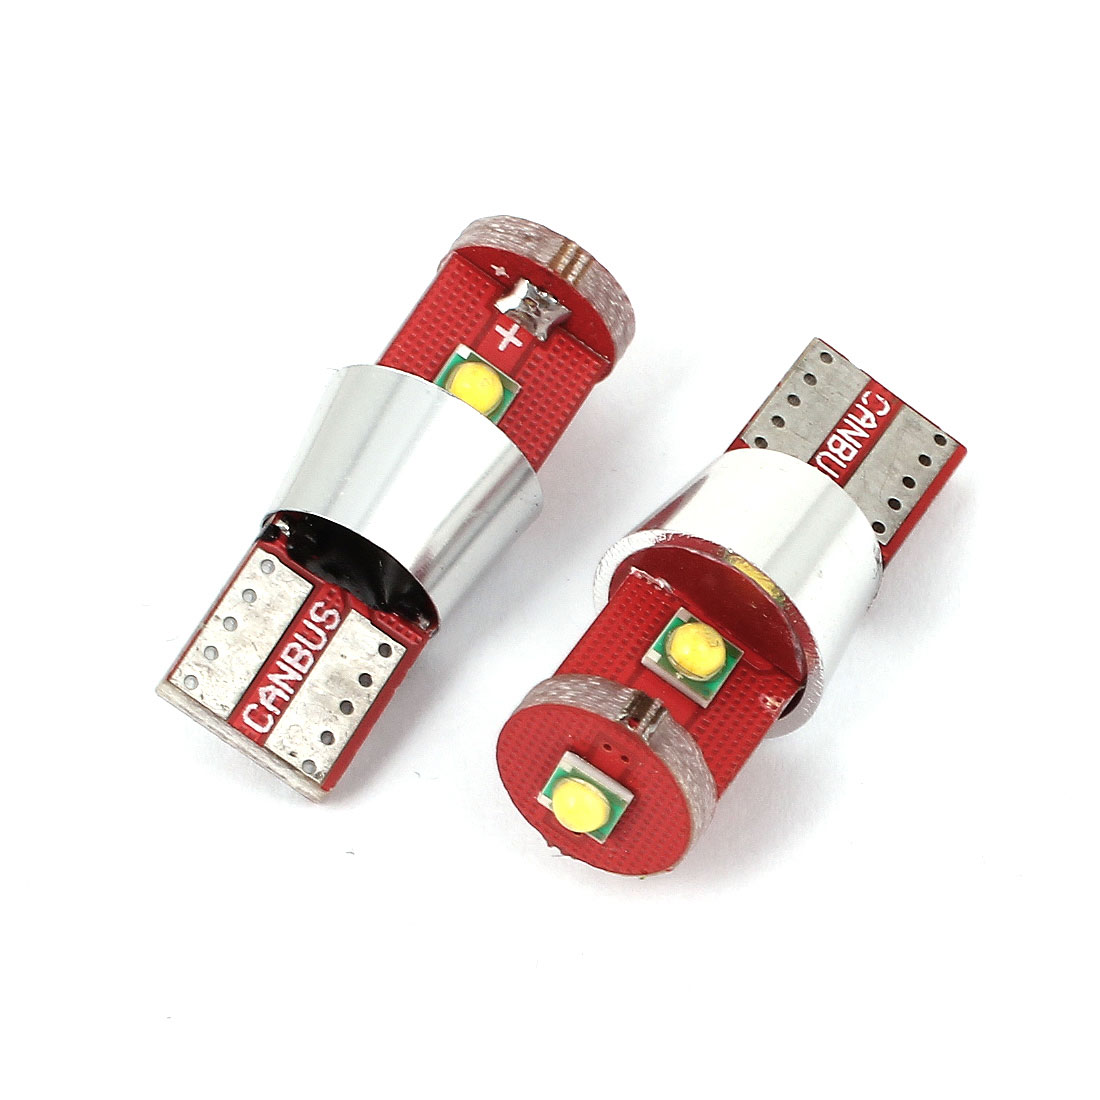 2 Pcs Car T10 W5W 3 SMD LED 15W Dashboard Gauge Bulb Light Lamp White 12V internal